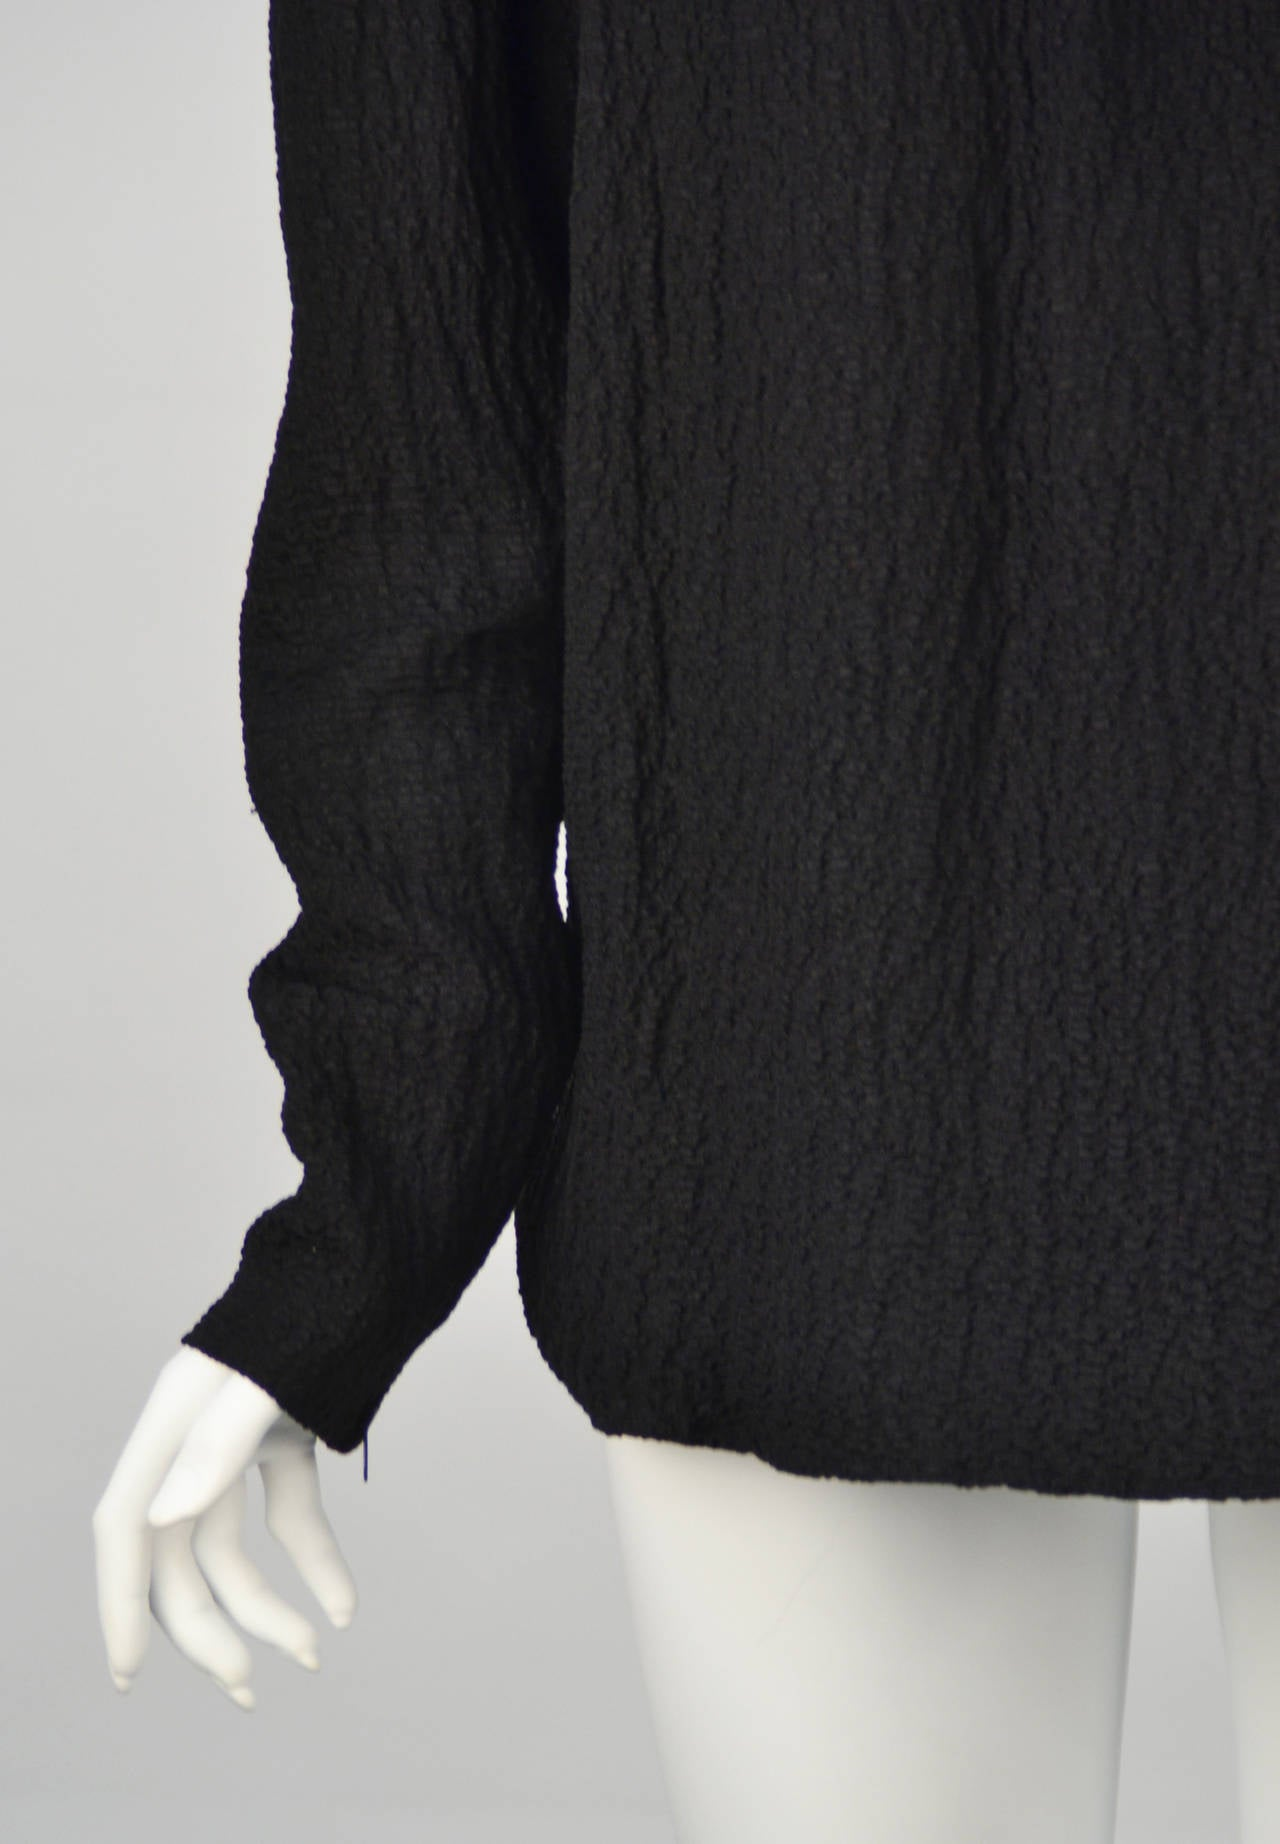 1970s Yves Saint Laurent Black Blouse In Excellent Condition For Sale In Houston, TX